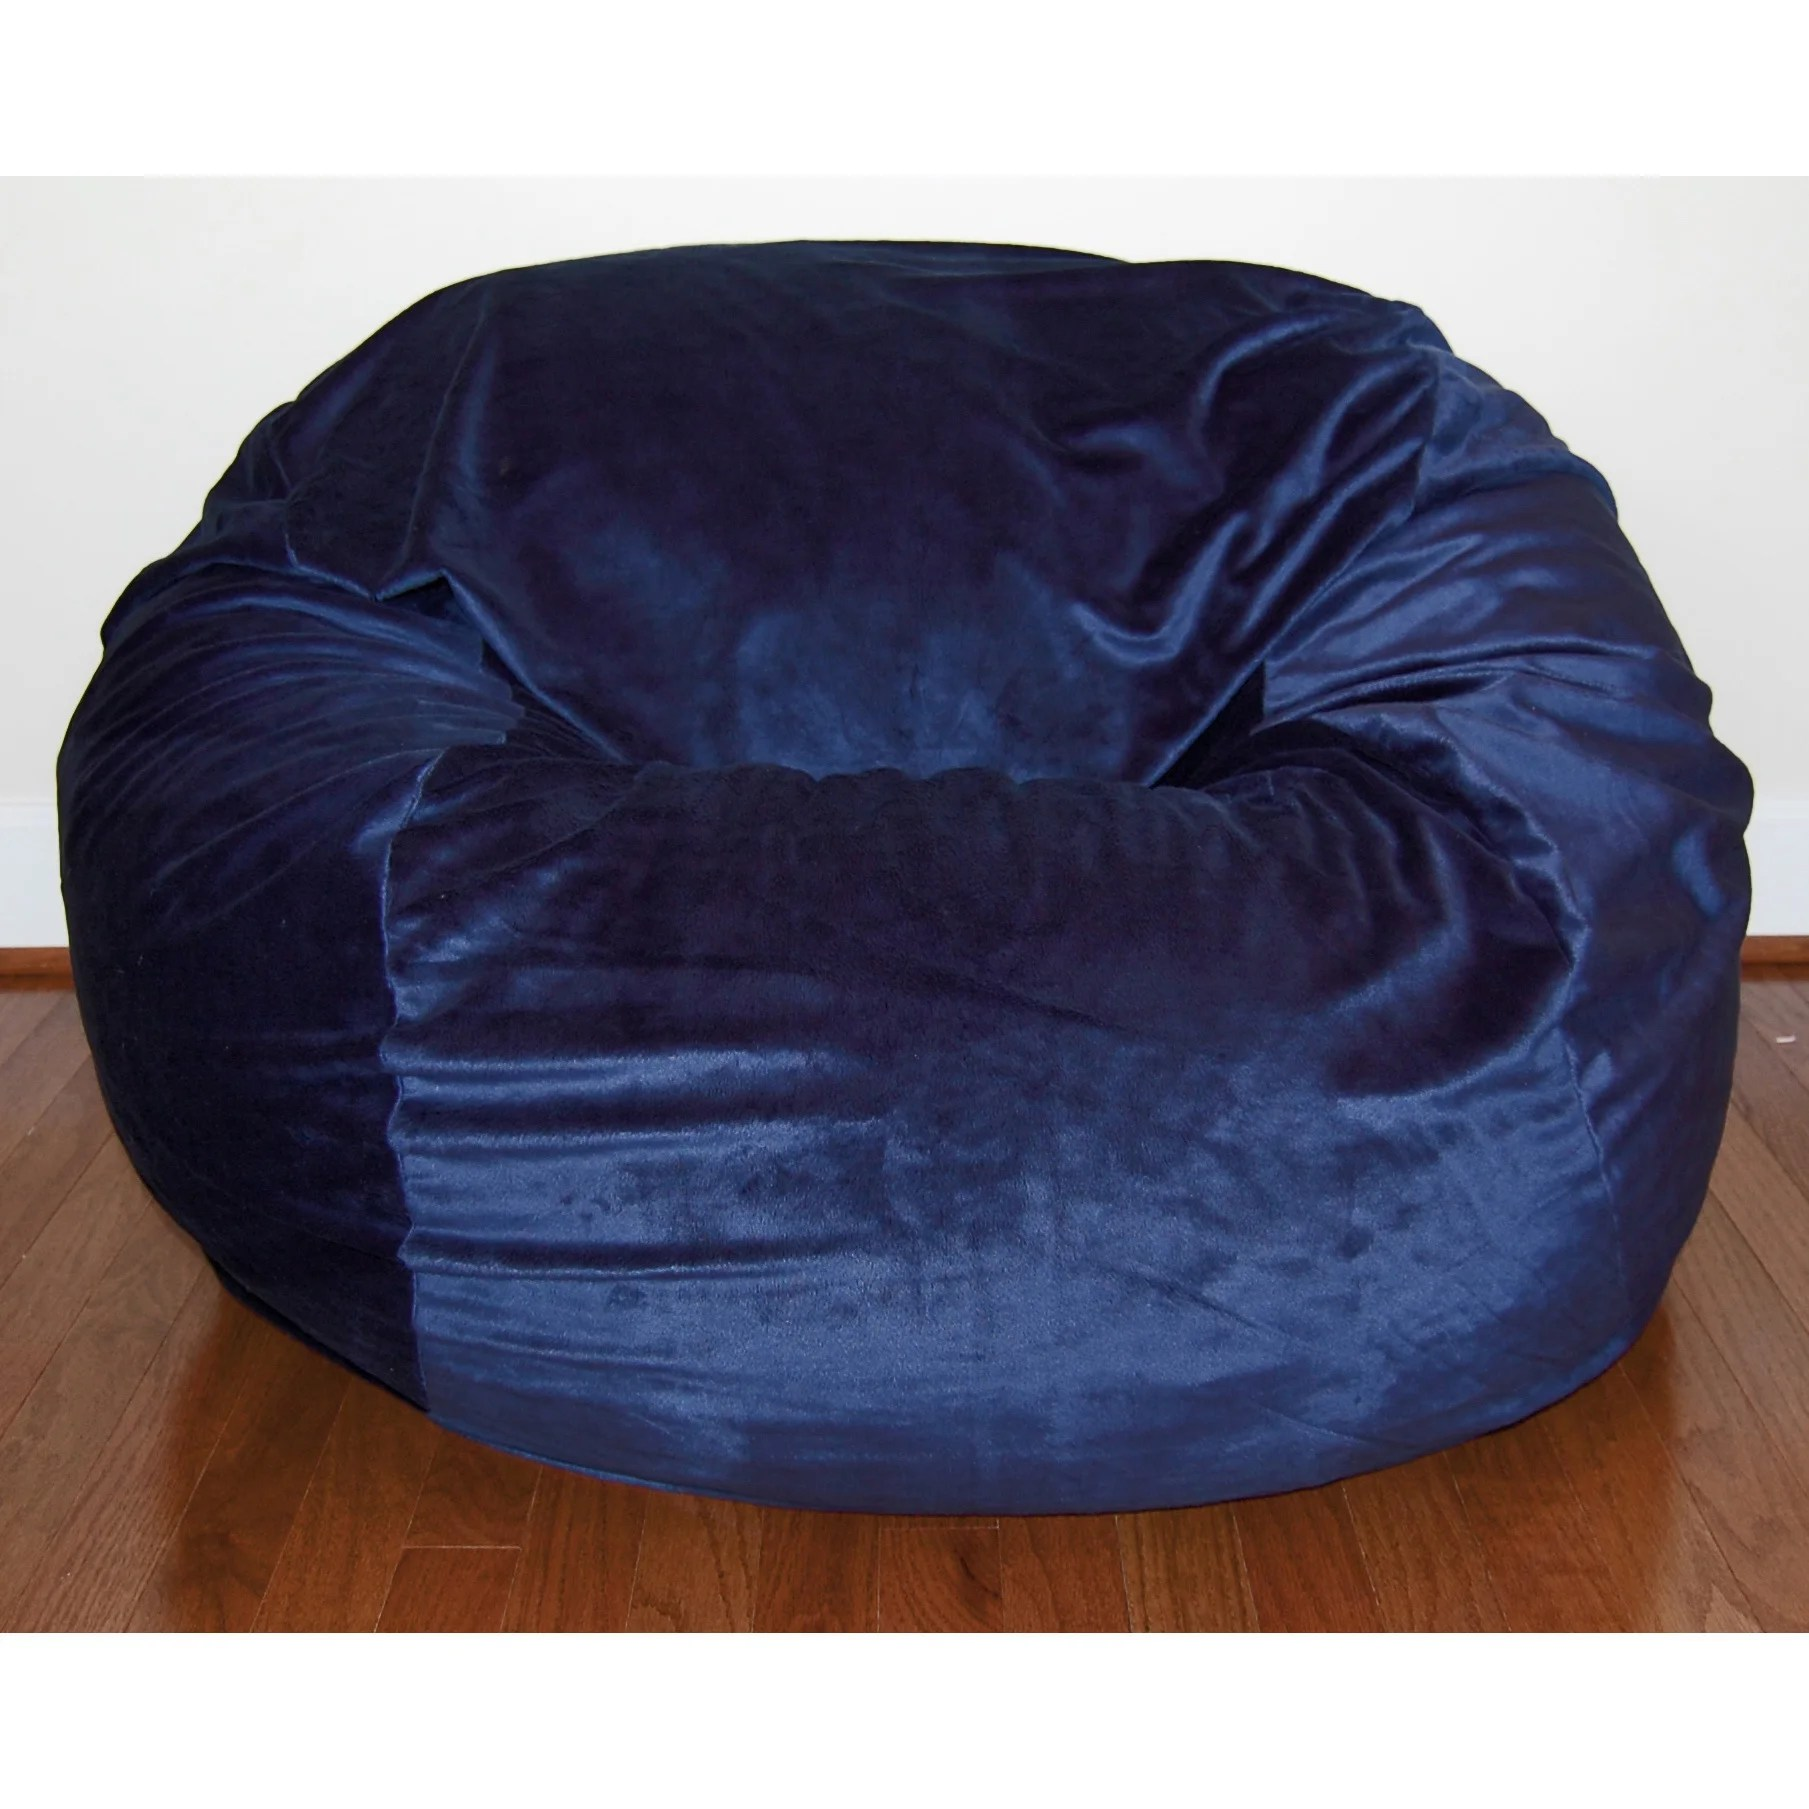 bean bag chair cost threshold windsor dining black ahh products cuddle minky sage washable large